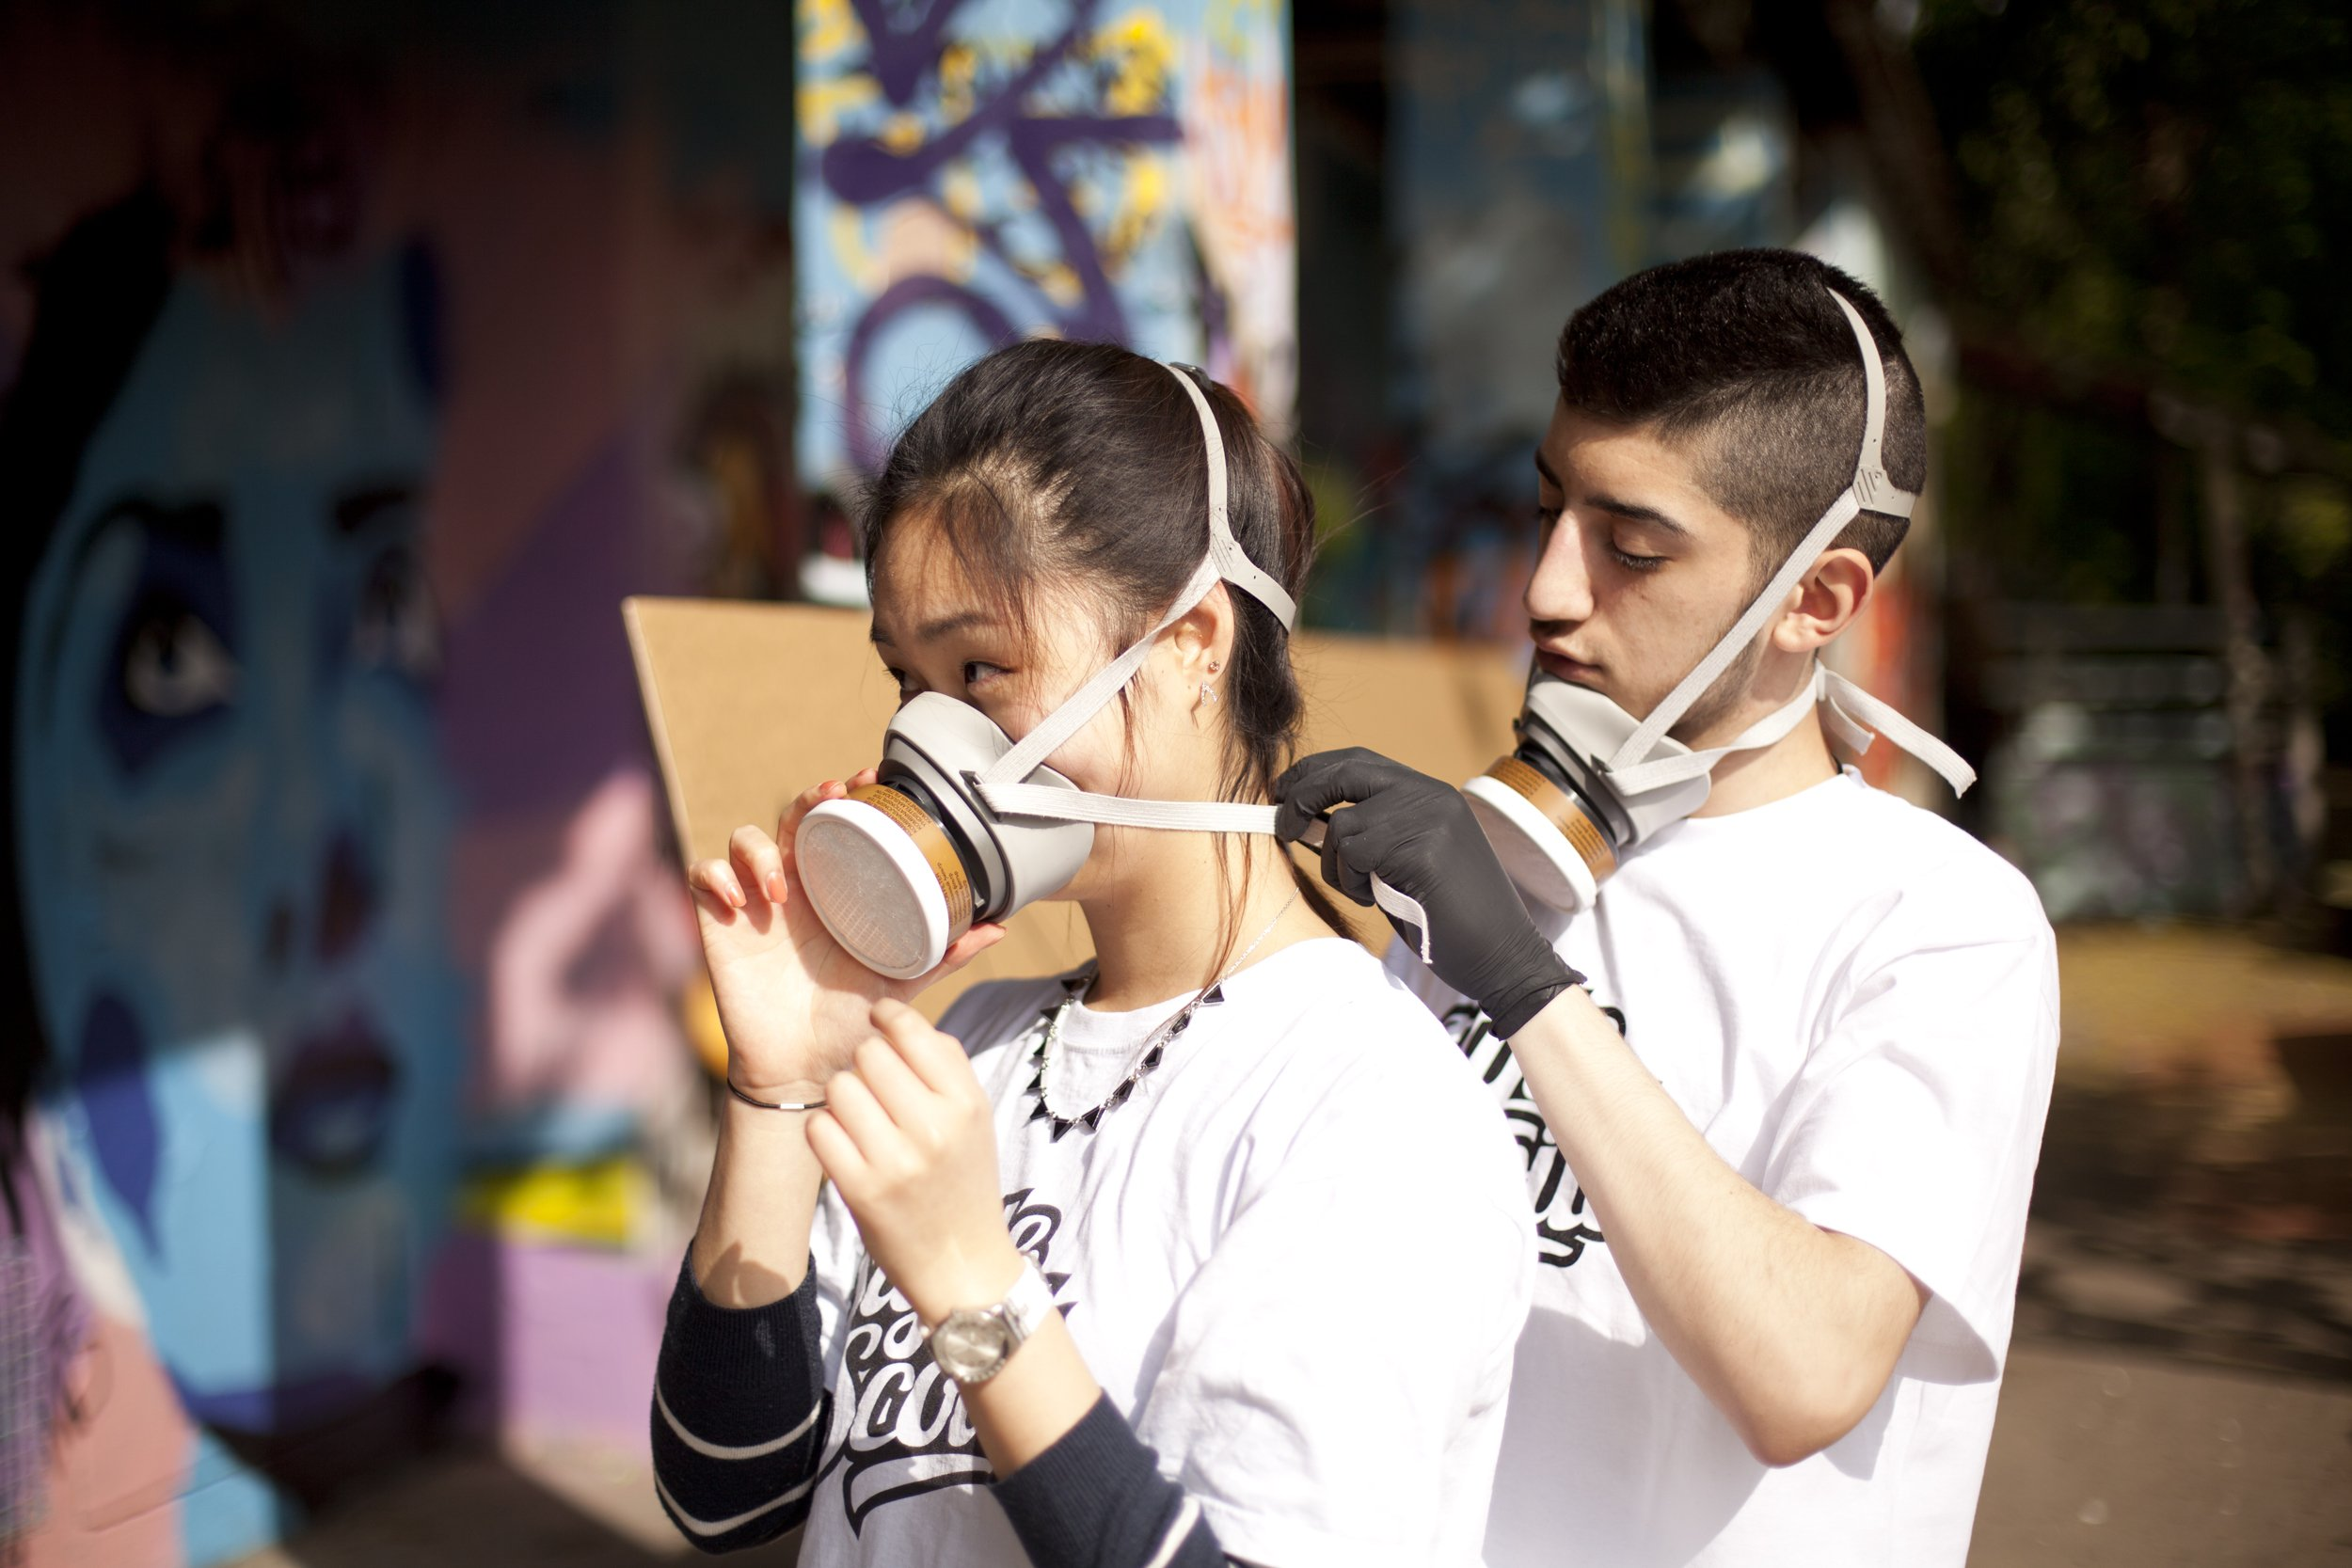 Urban [He]arts im Franken-Center: Graffiti-Workshop mit Style Scouts® - © Style Scouts®